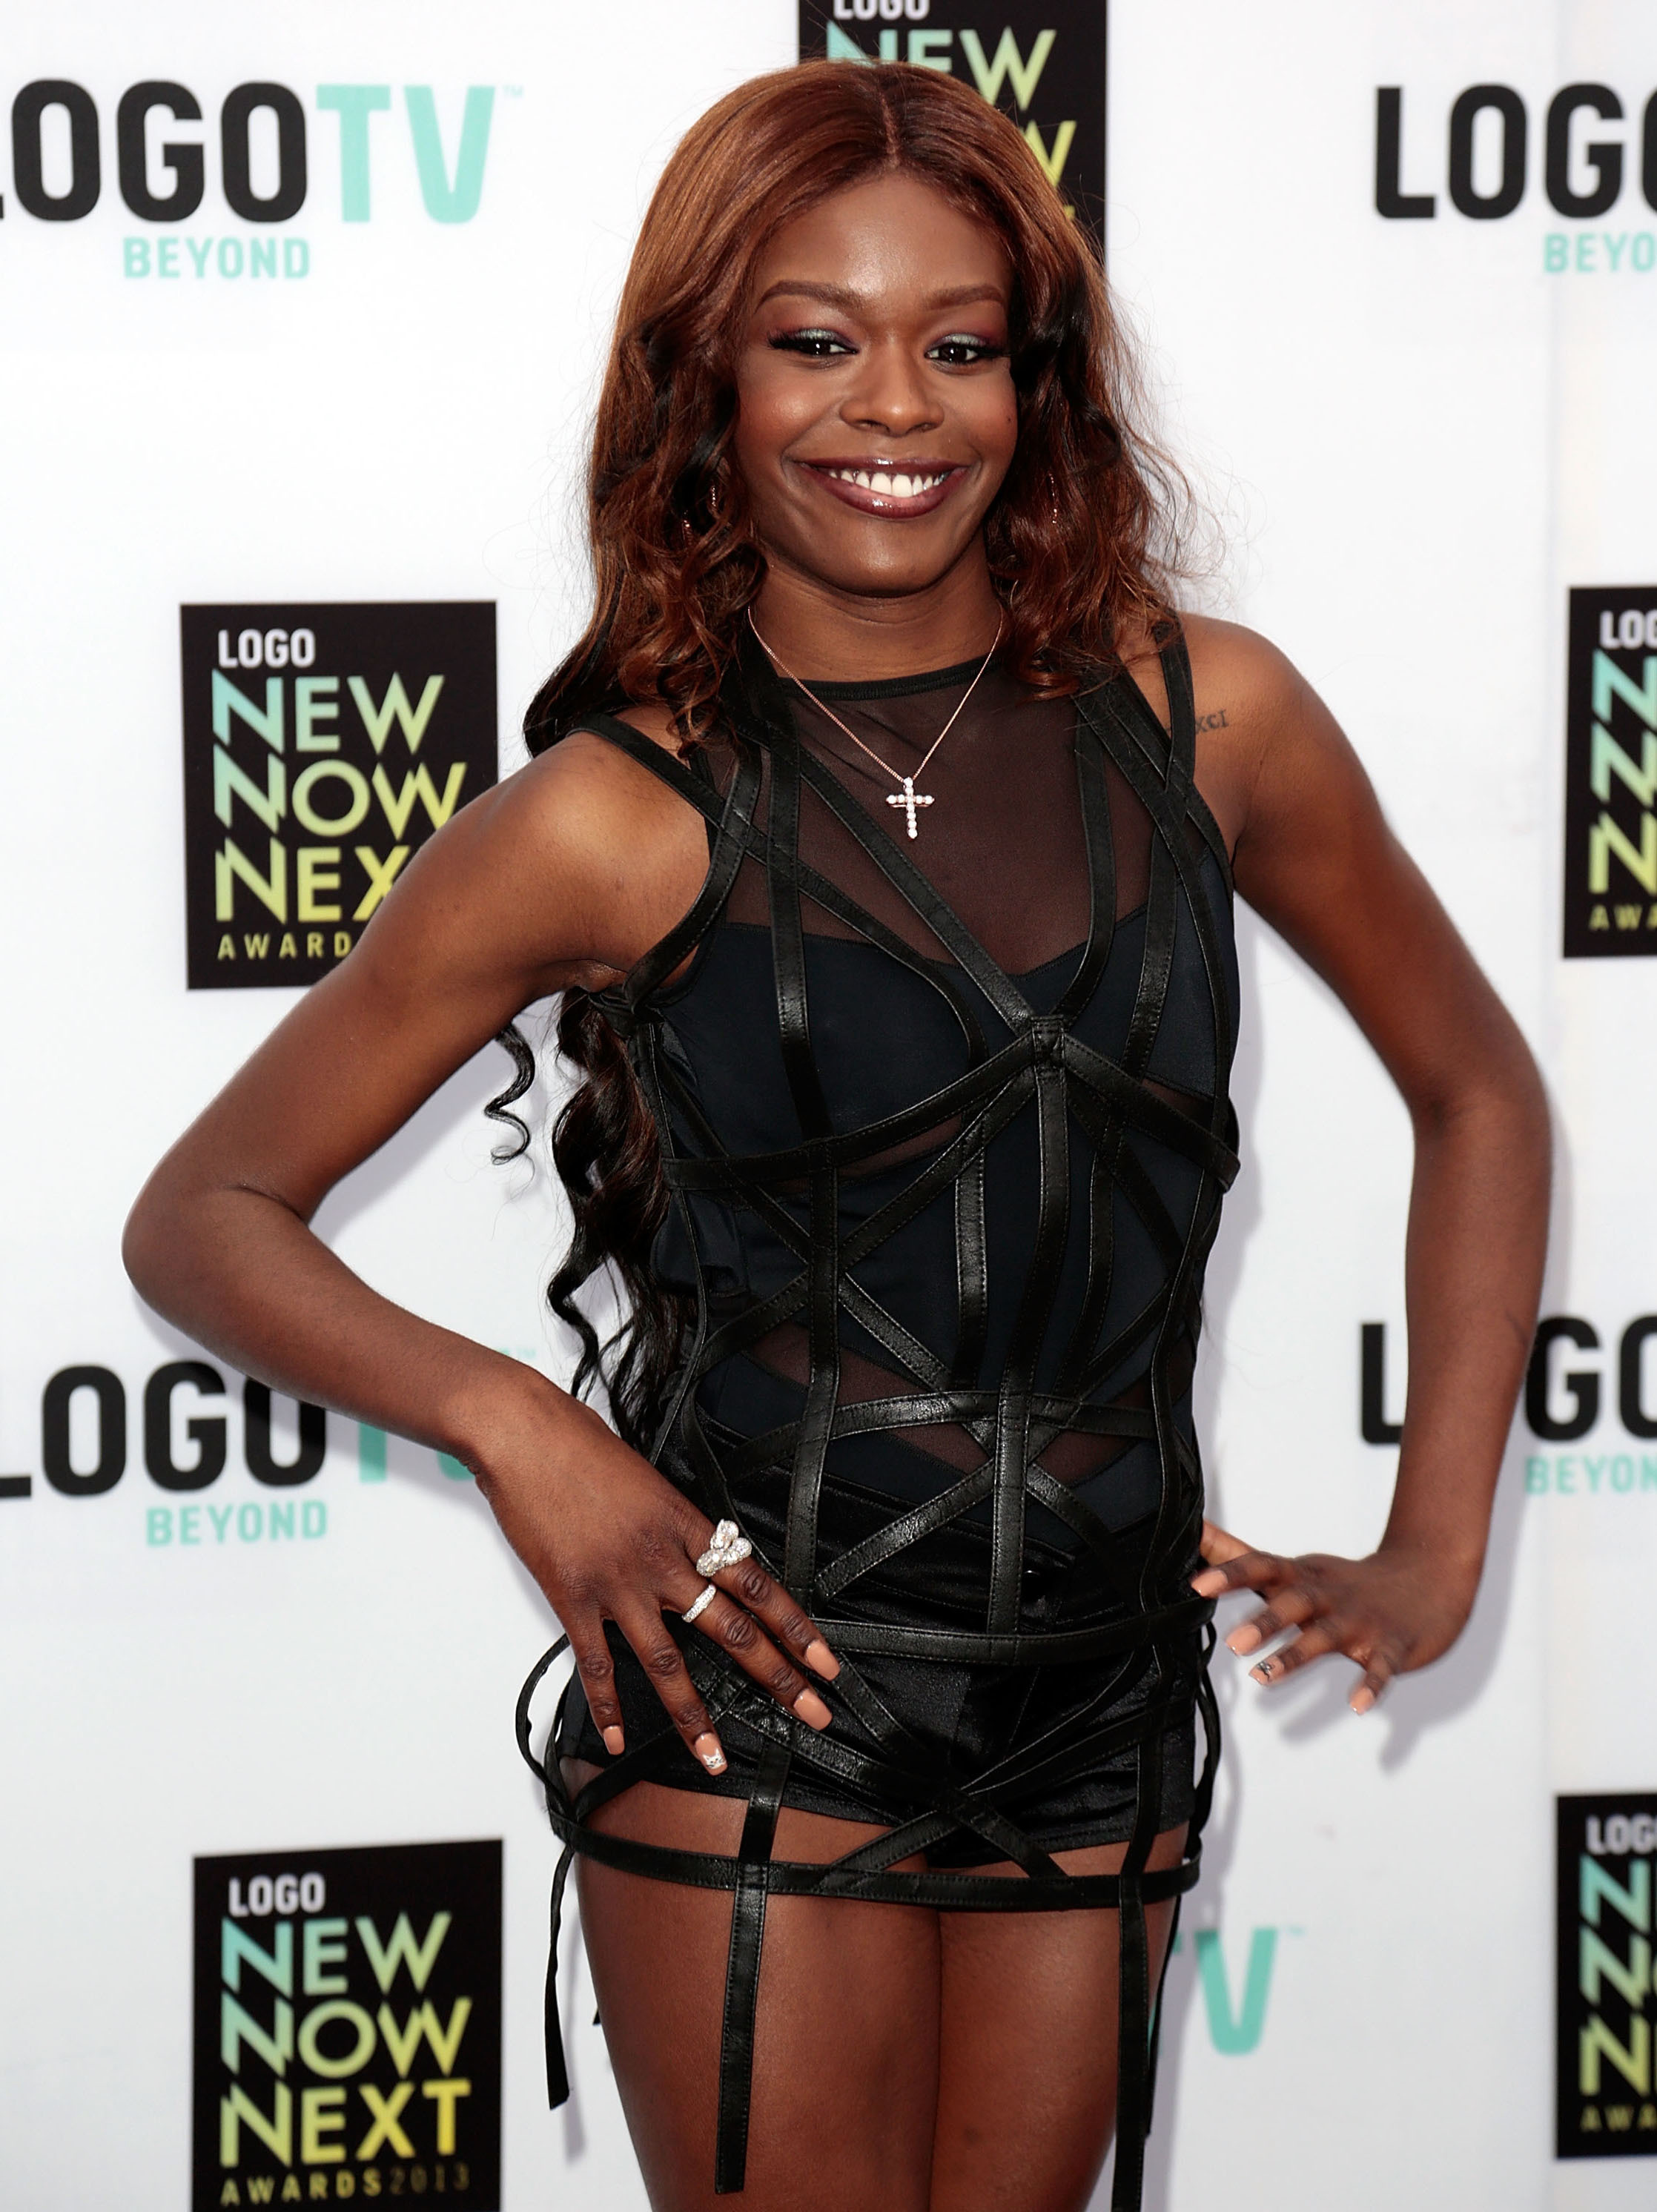 Azealia Banks won't be charged for Los Angeles bouncer fight